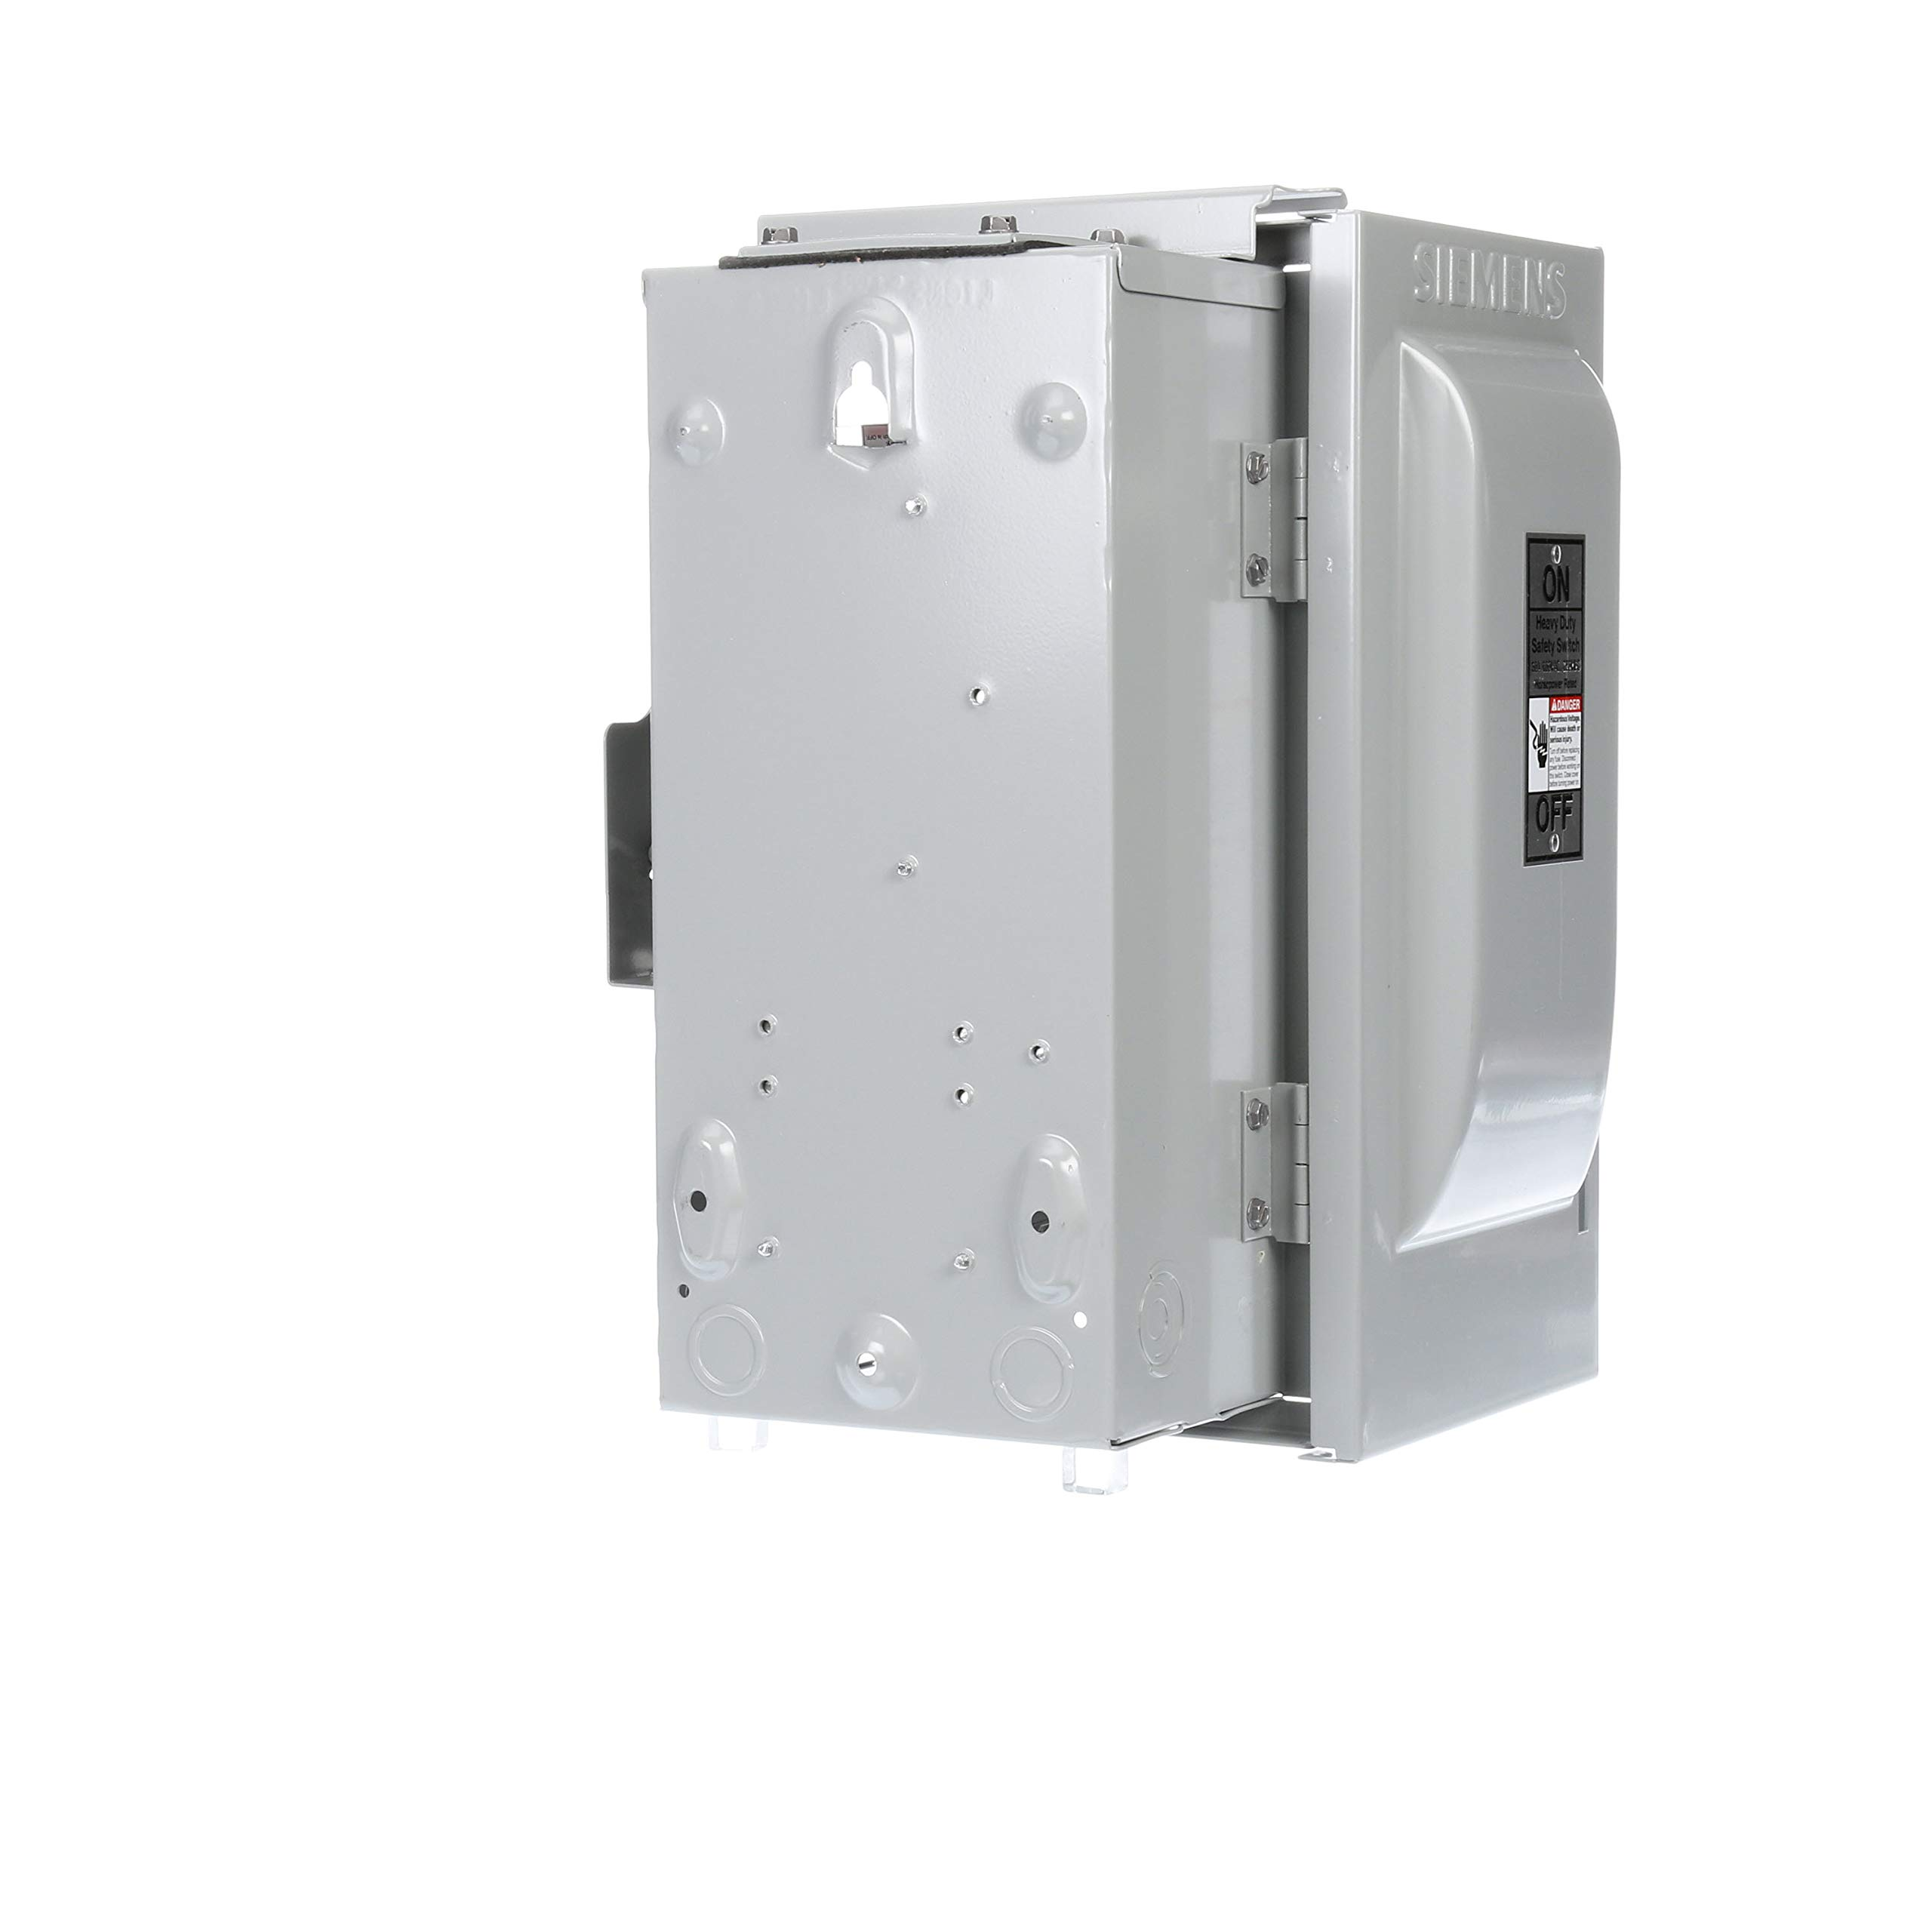 Siemens HF361R 30-Amp 3 Pole 600-volt 3 Wire Fused Heavy Duty Safety Switches by SIEMENS (Image #4)